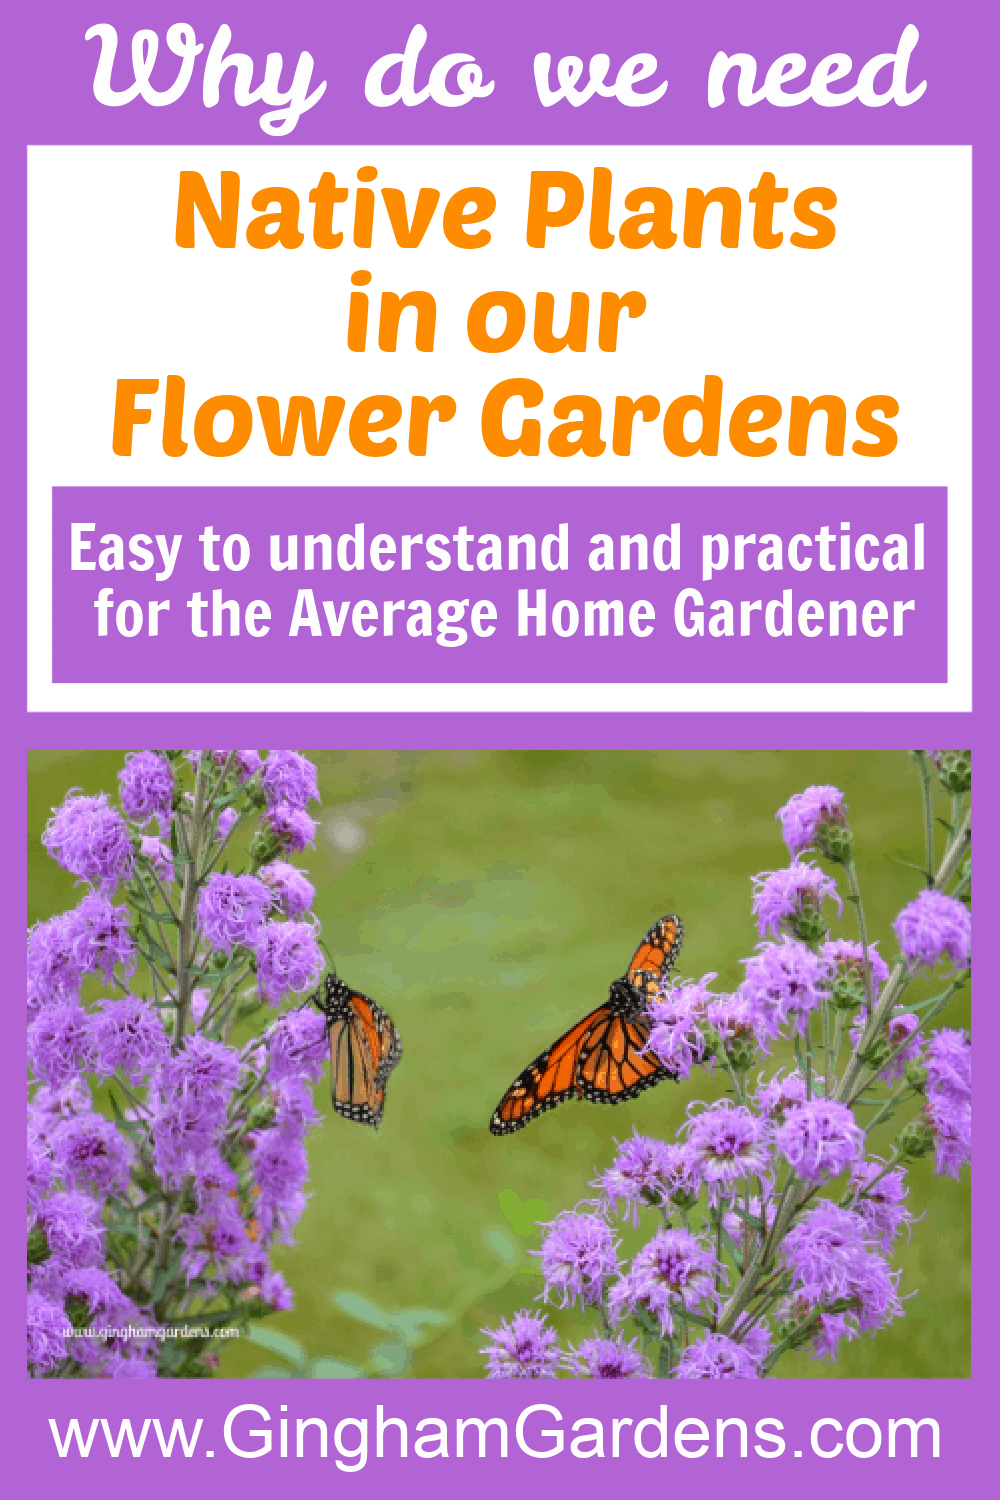 Image of butterflies on liatris with text overlay - Native Plants in Our Flower Gardens